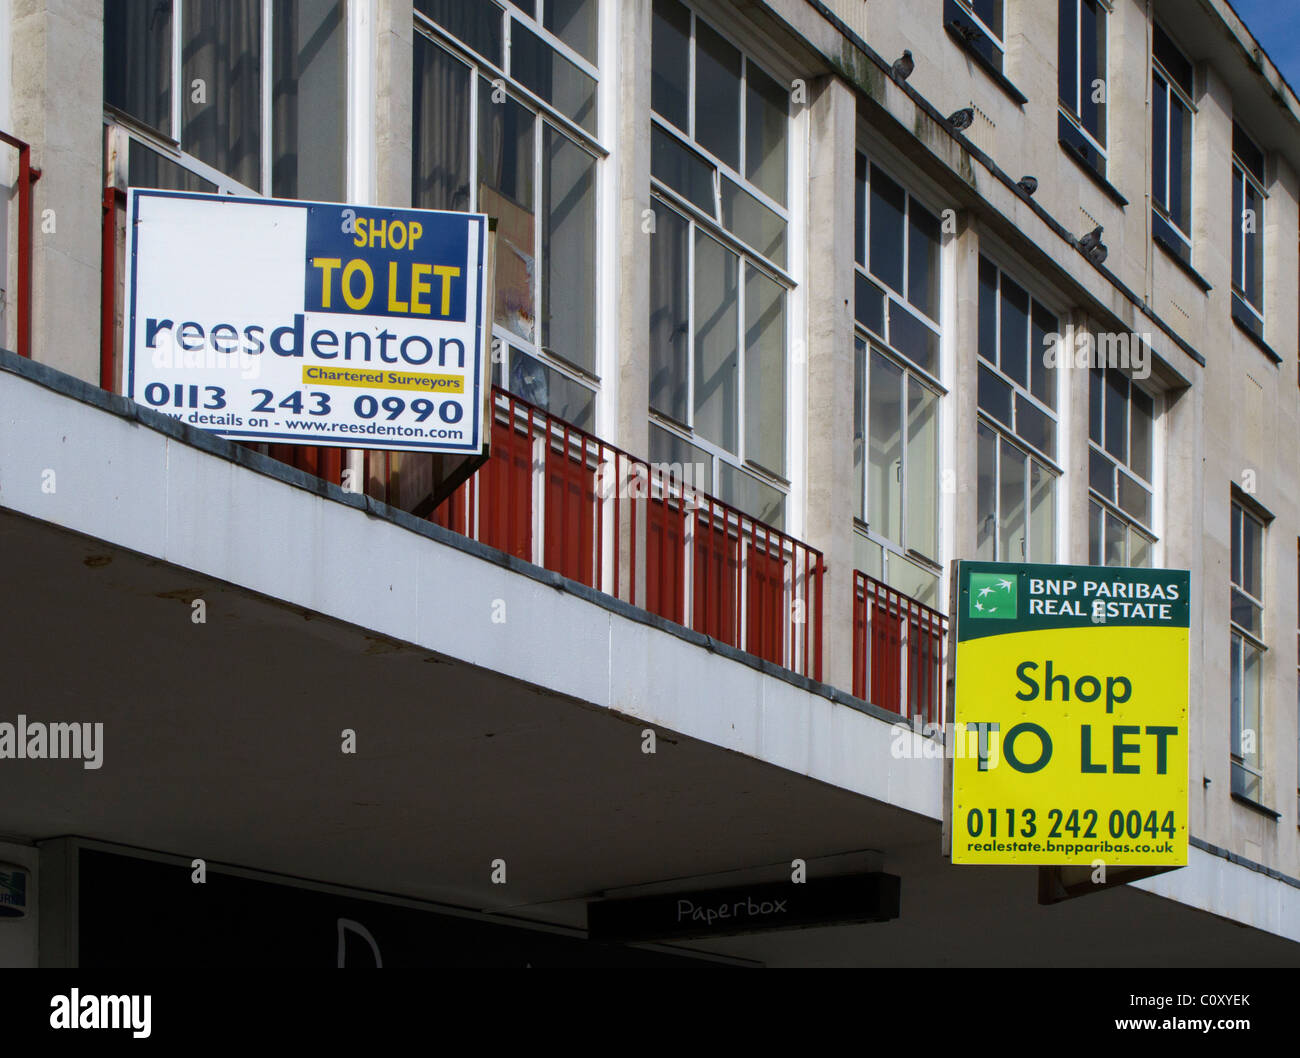 High street shops to let - Stock Image